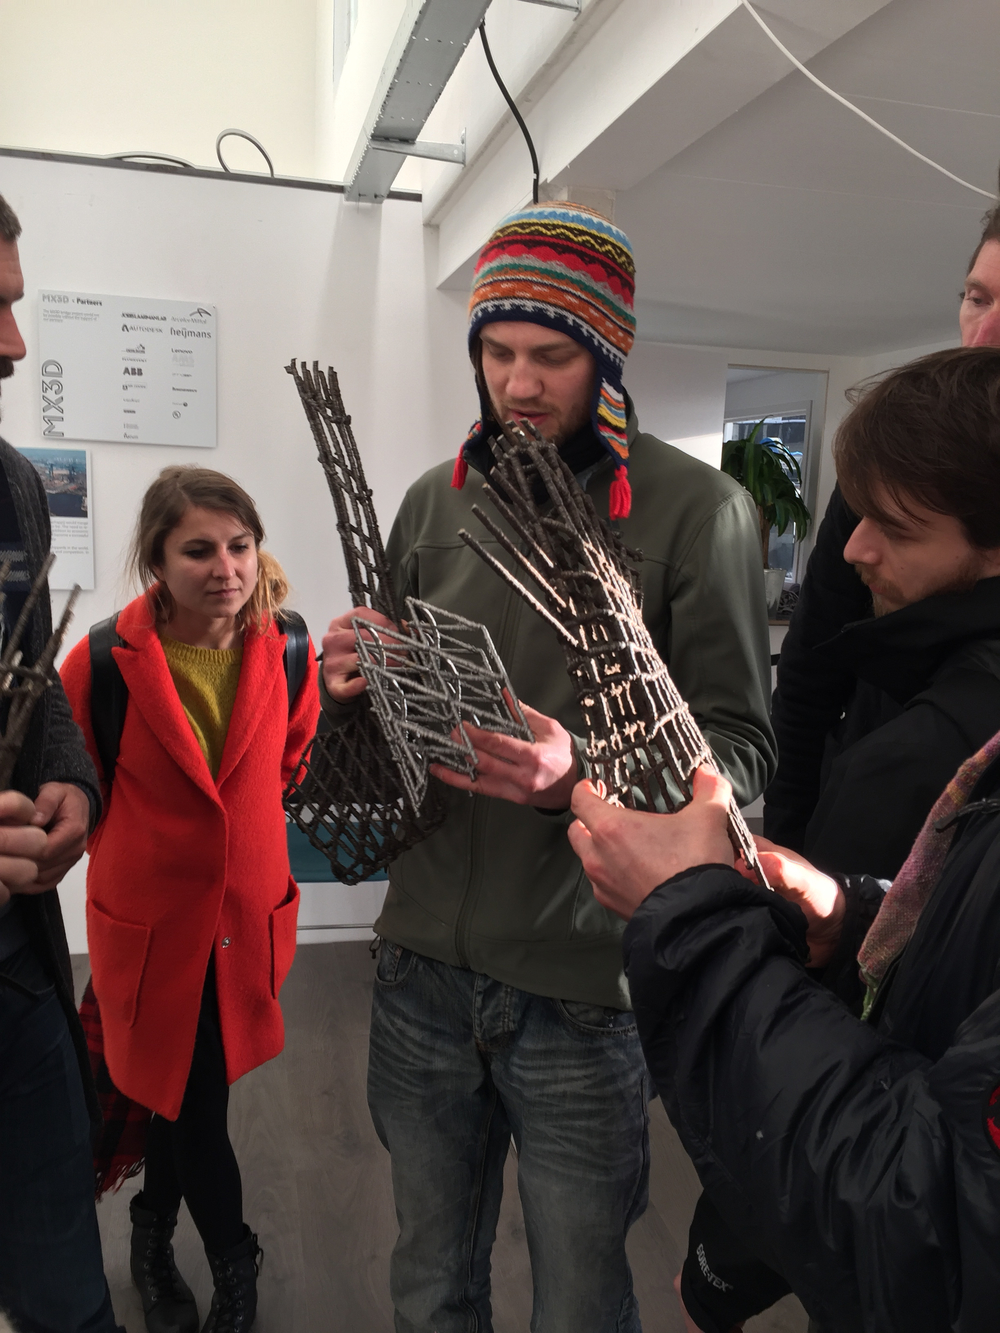 Admiring a 3D printed bicycle frame and other test structures with a contagiously enthusiastic engineer at MX3D.